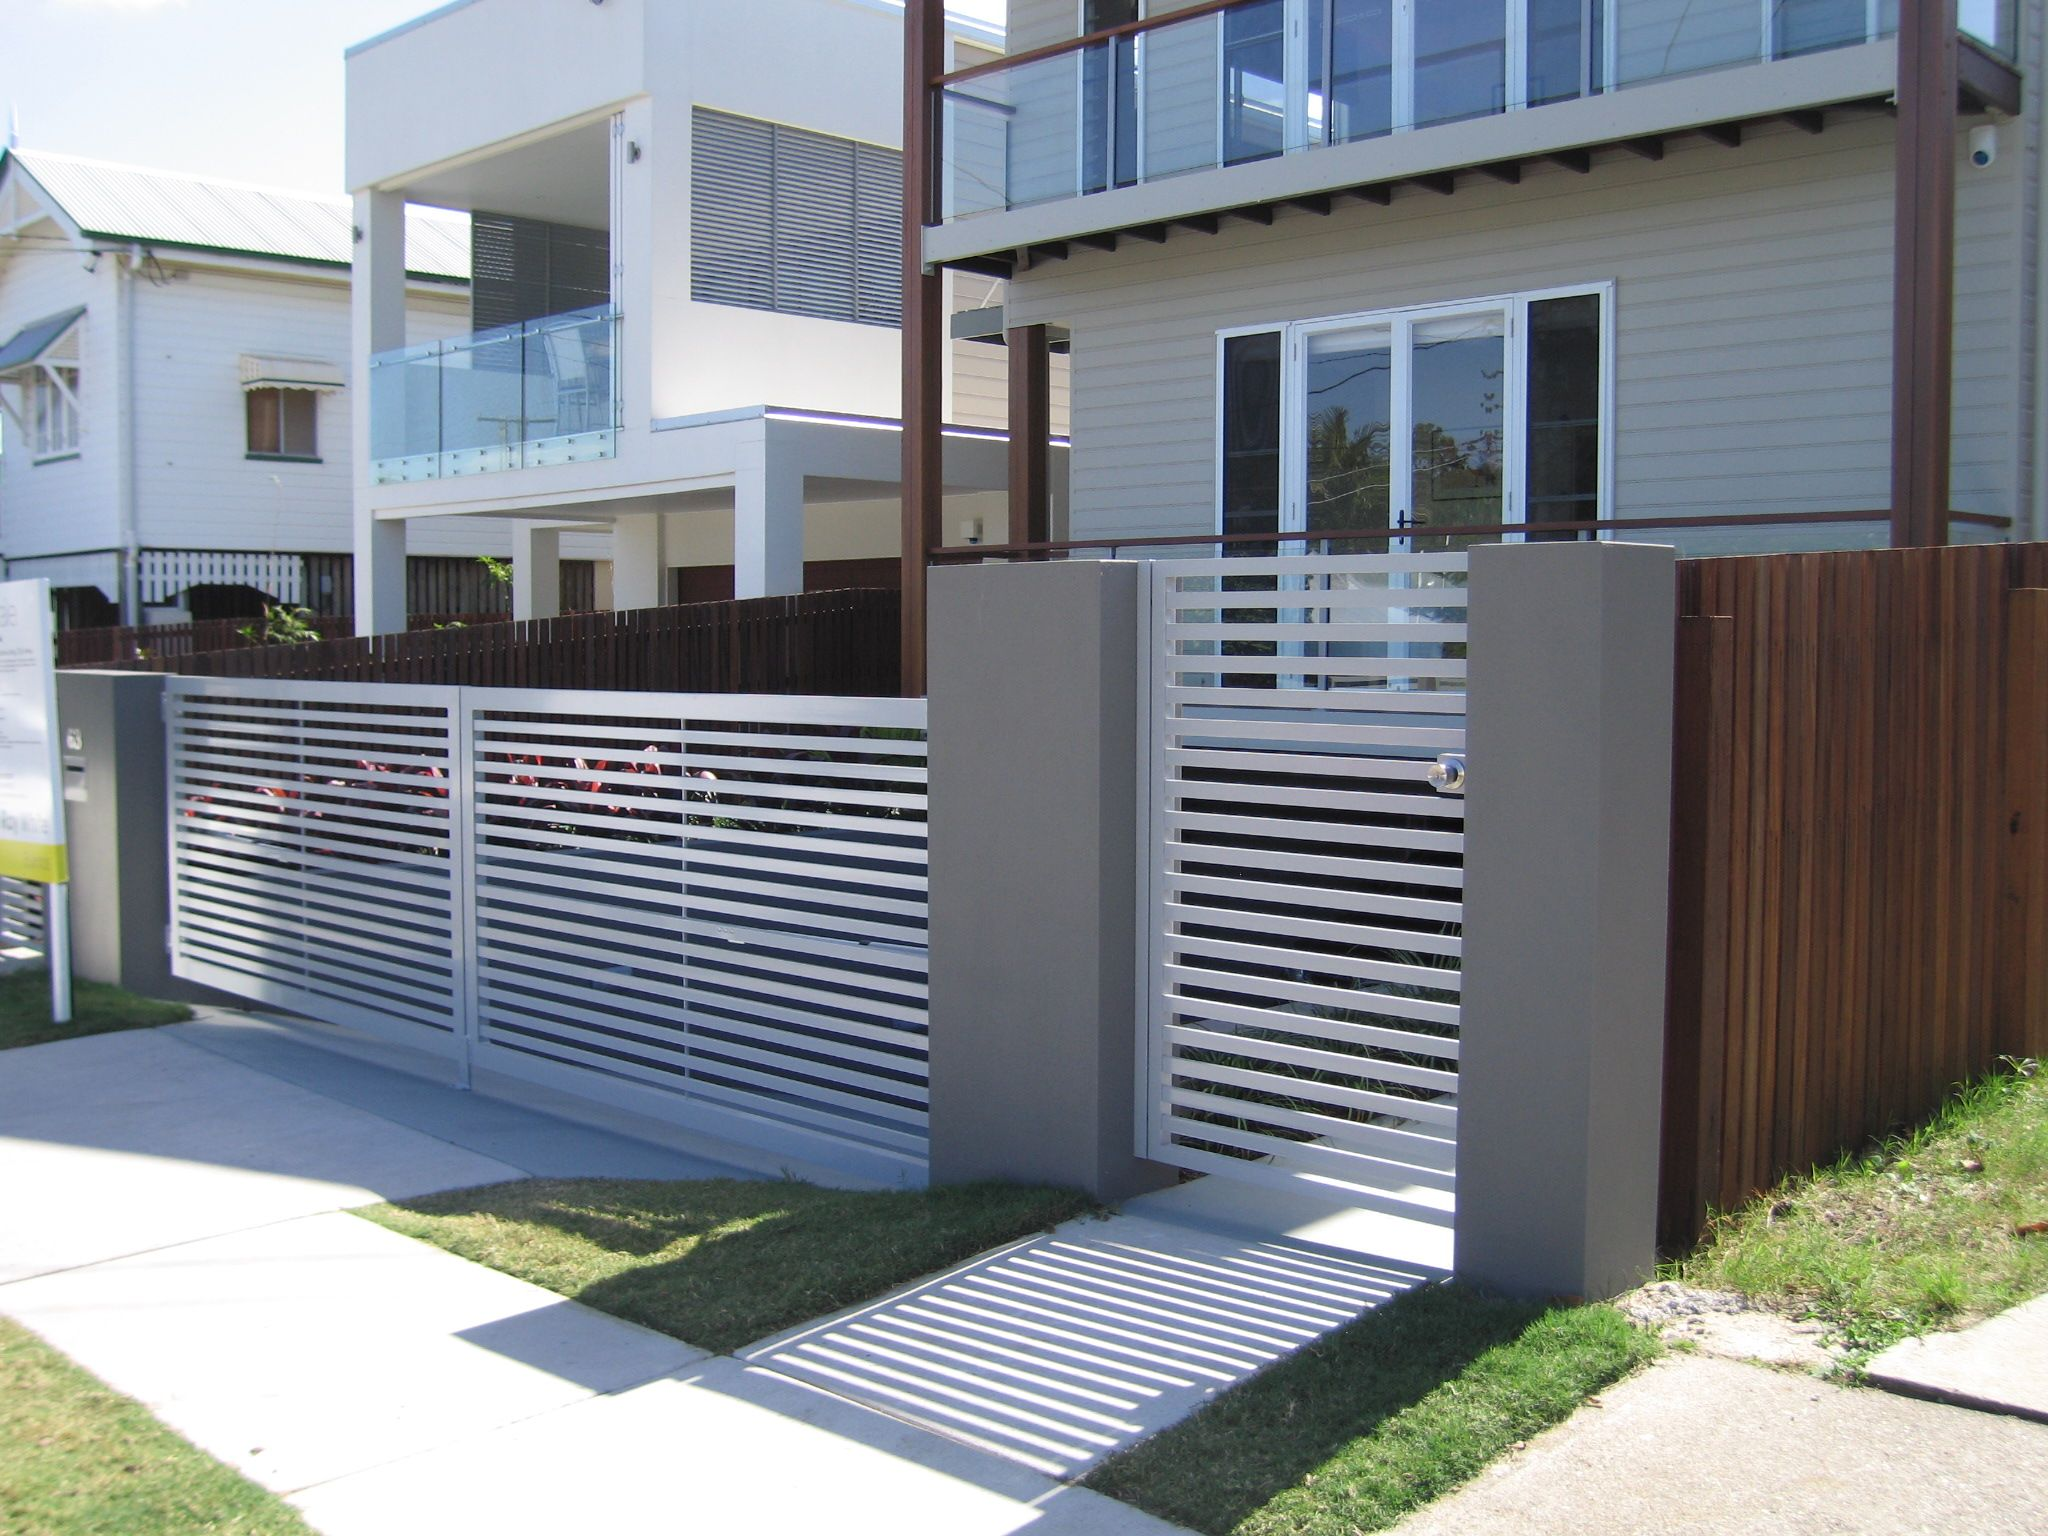 Steel gates adelaide sunlander outdoor products 600x450 jpeg - Steel Gates Adelaide Sunlander Outdoor Products 600x450 Jpeg This Digital Photography Of Lattice Fences And Download